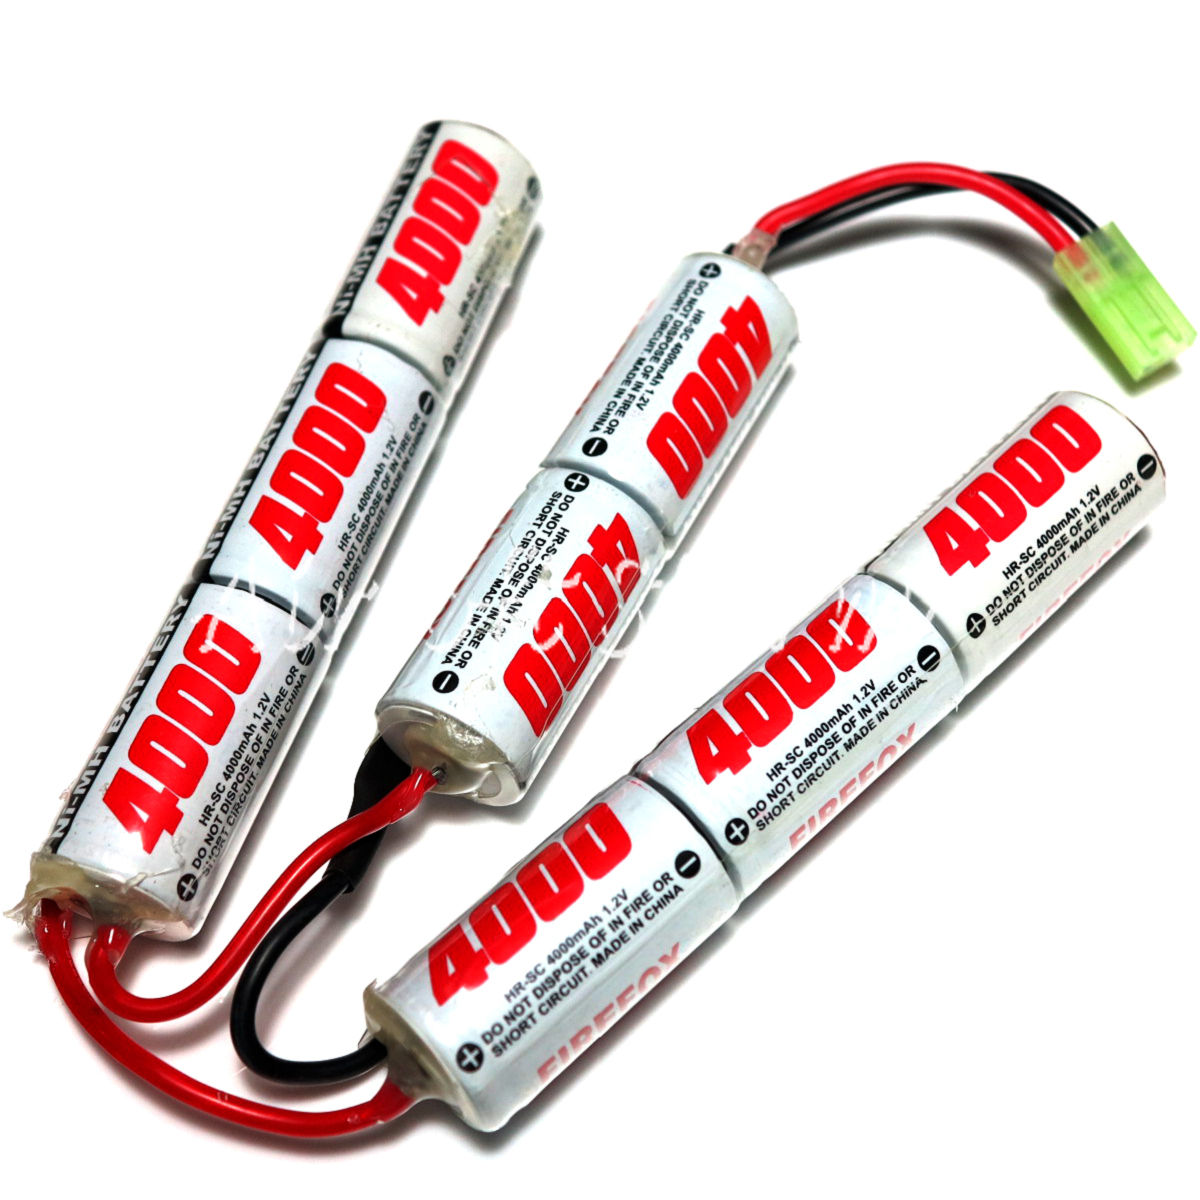 Firefox 9.6V 4000mAh Ni-MH Airsoft Crane Stock Battery